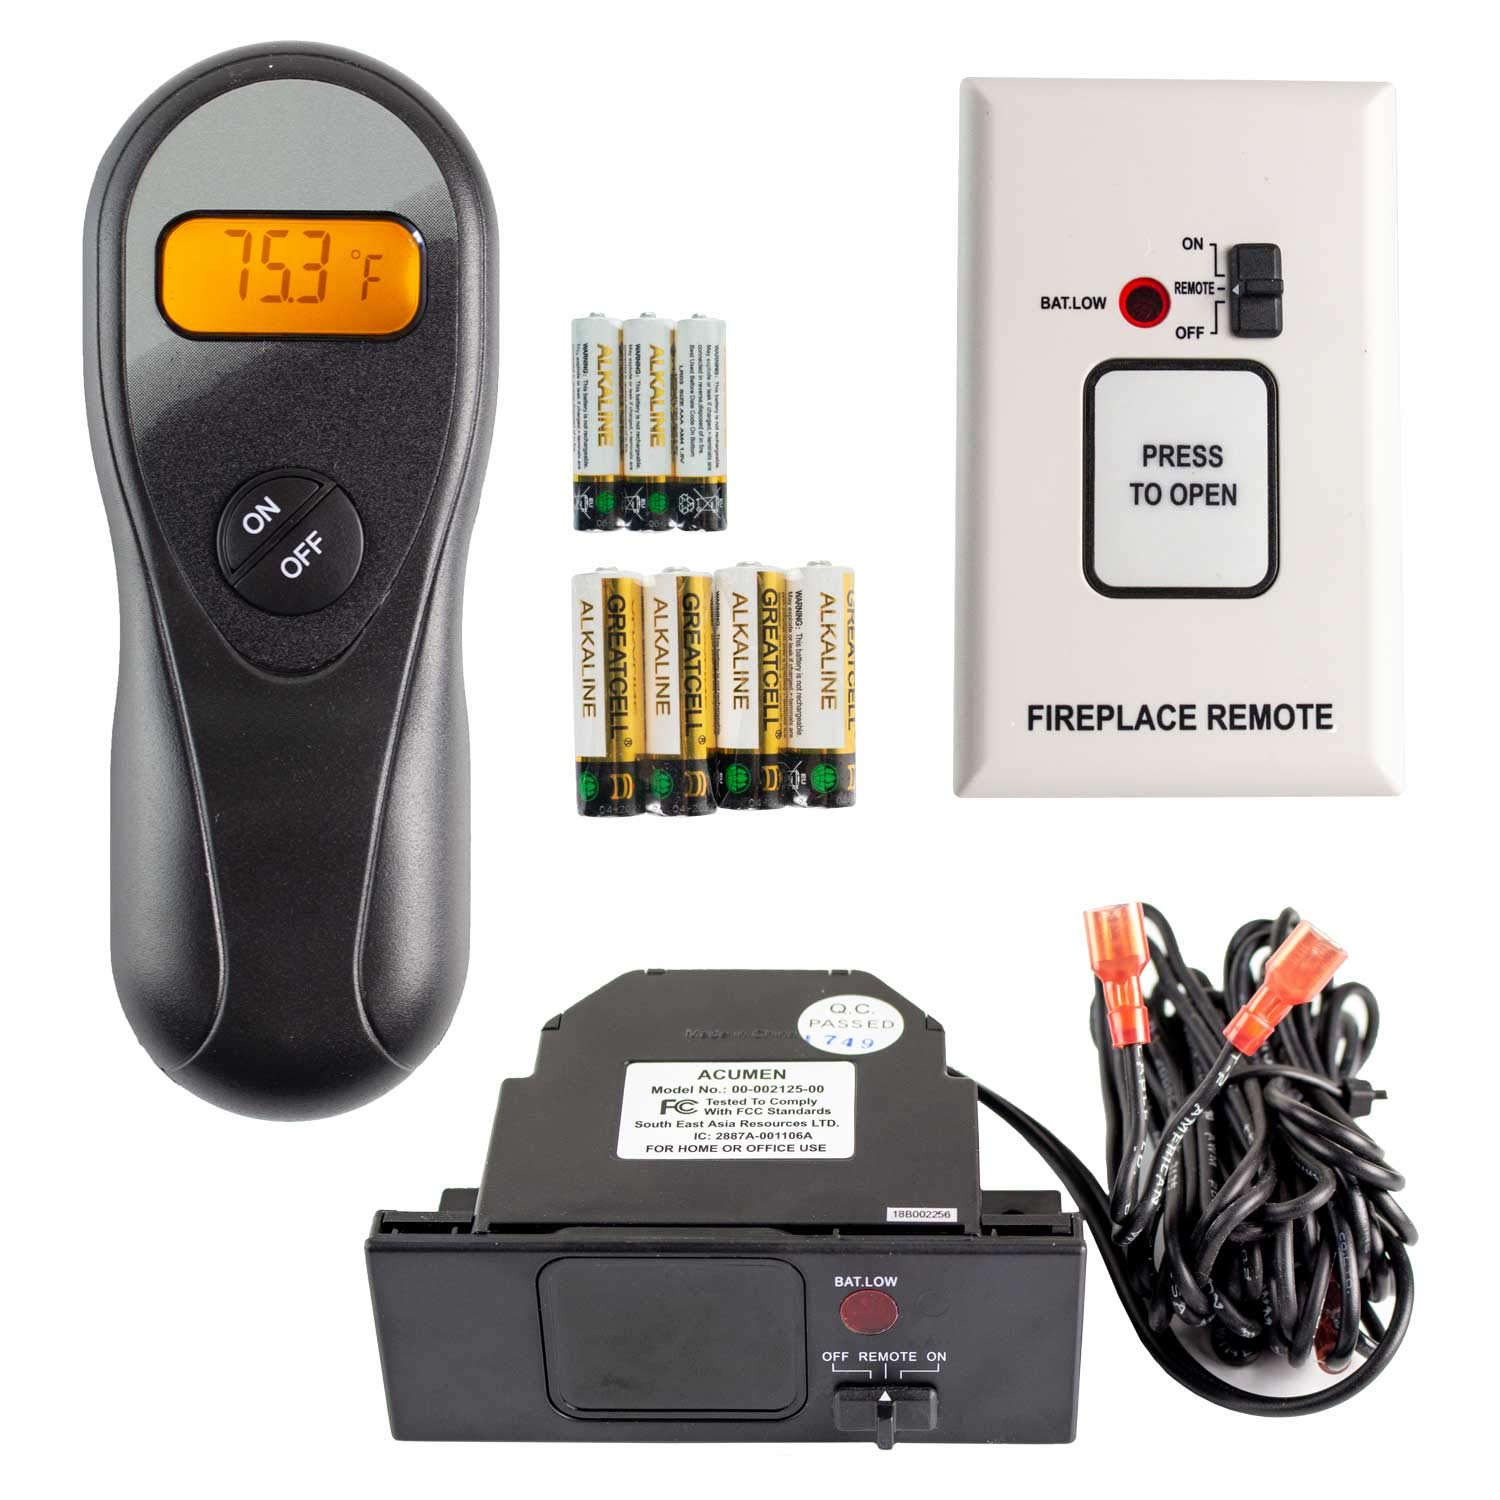 Hearth Products Controls Acumen On/Off Fireplace Remote Control with 9-Foot Wires (RCK-IW) by Hearth Products Controls